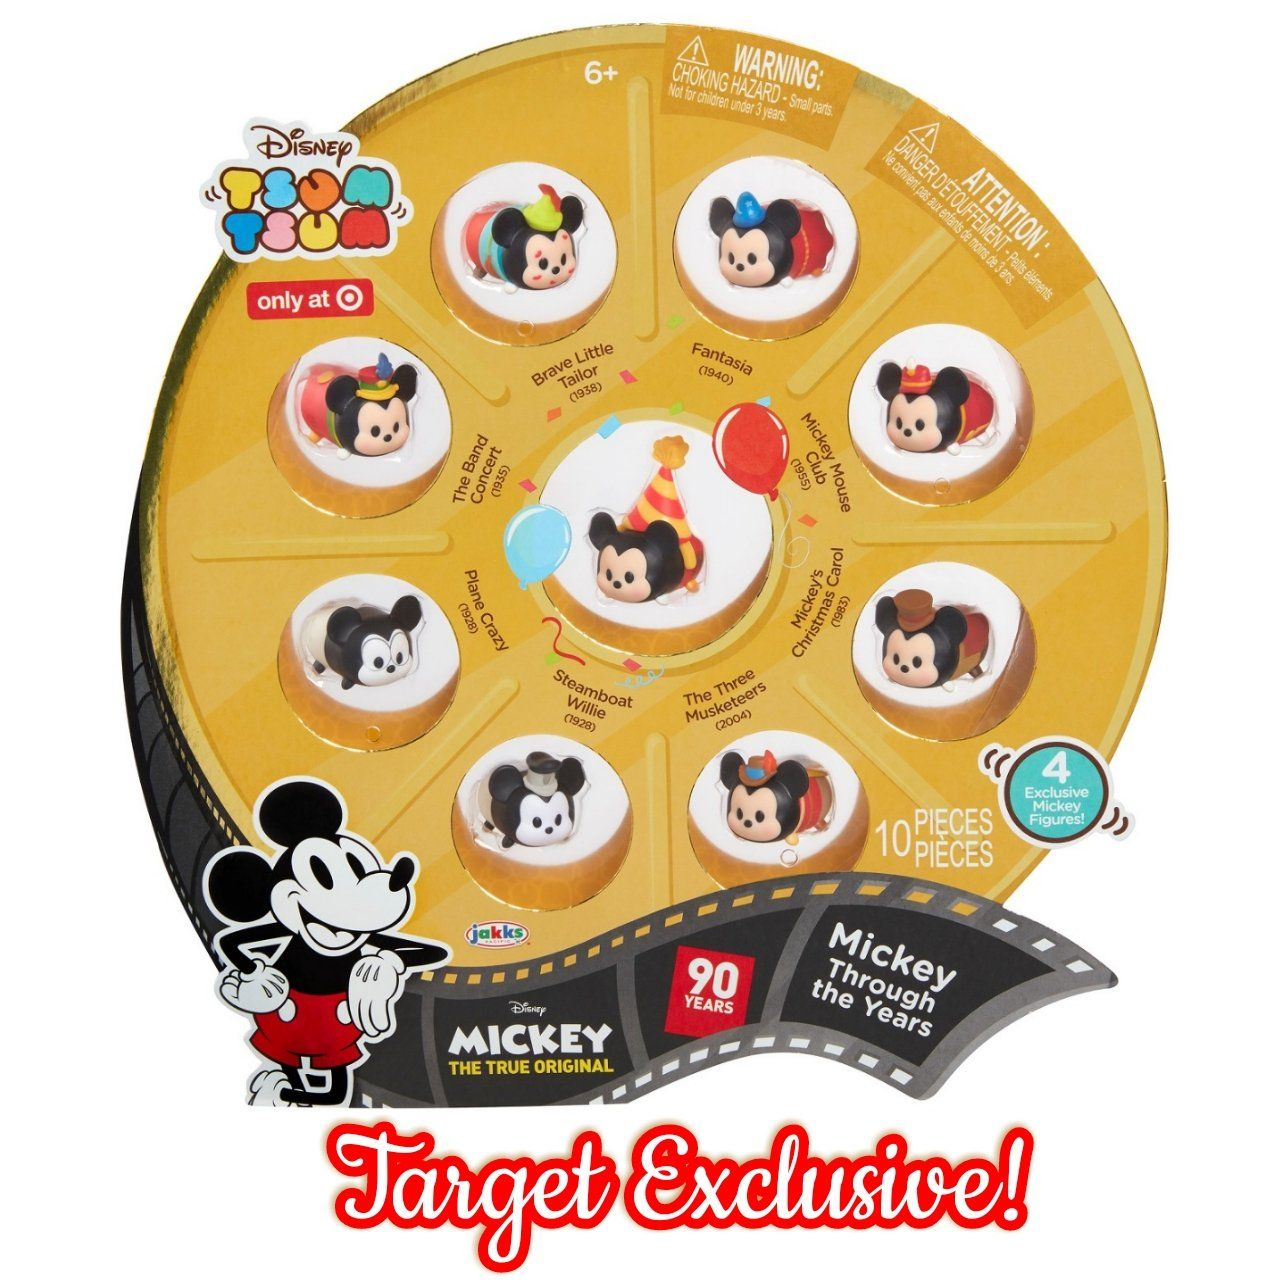 Limited Edition Disney Tsum Tsum Target Exclusive 10 Piece